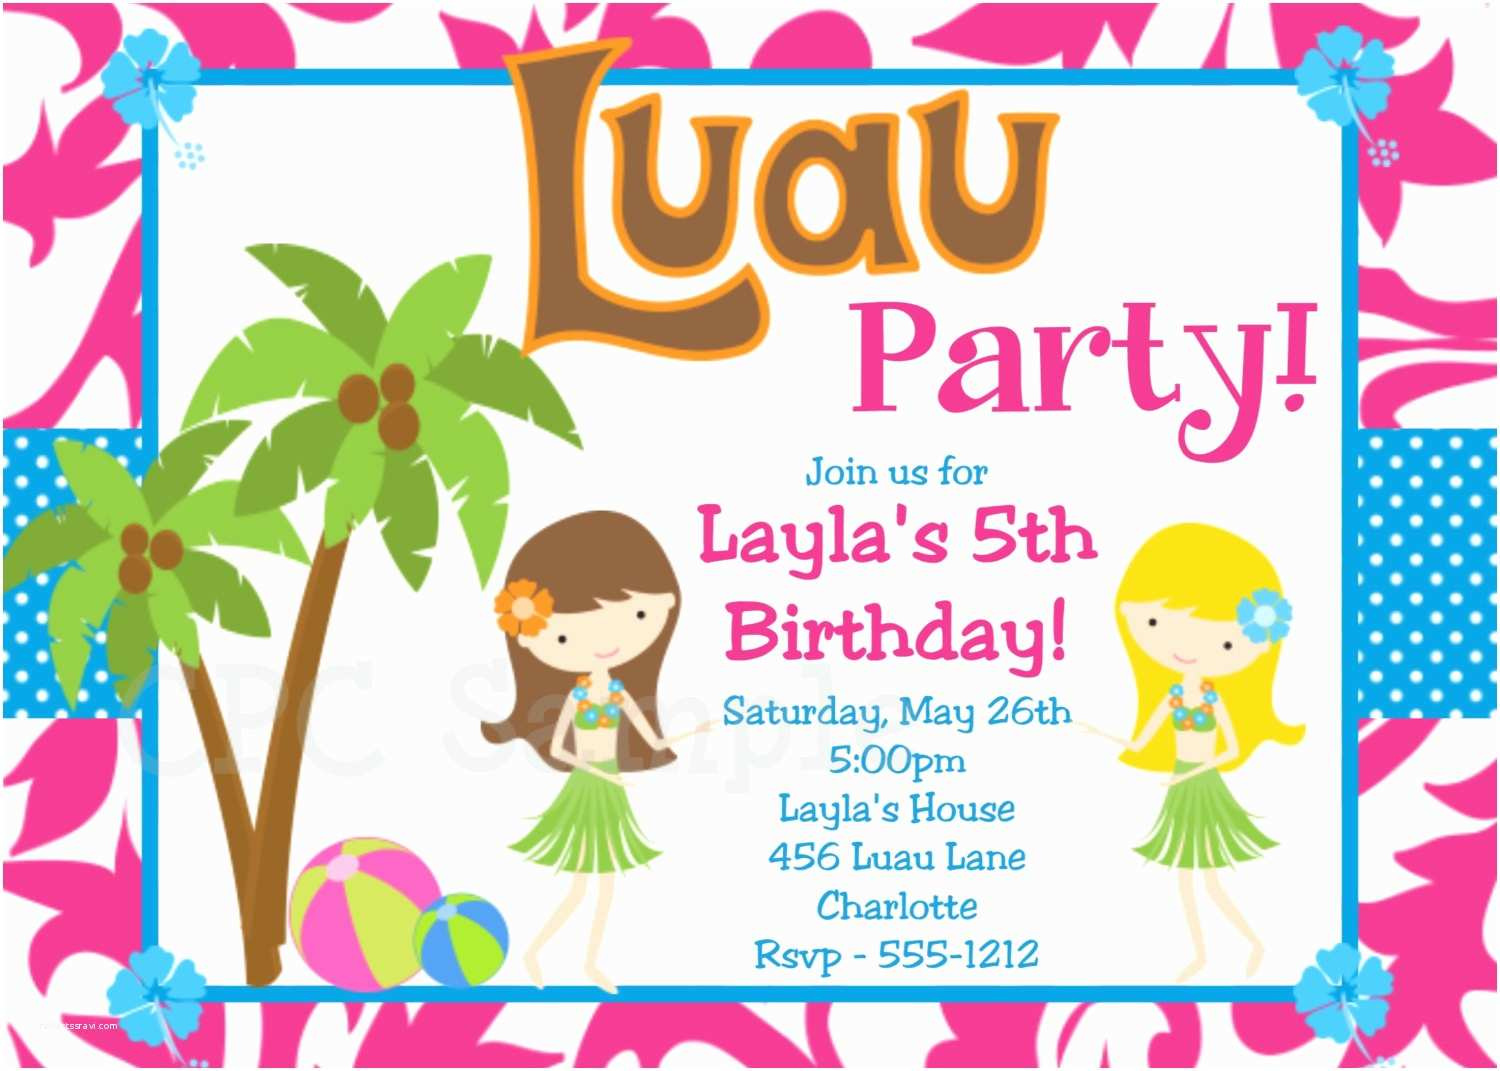 Birthday Party Invitation Template 20 Luau Birthday Invitations Designs